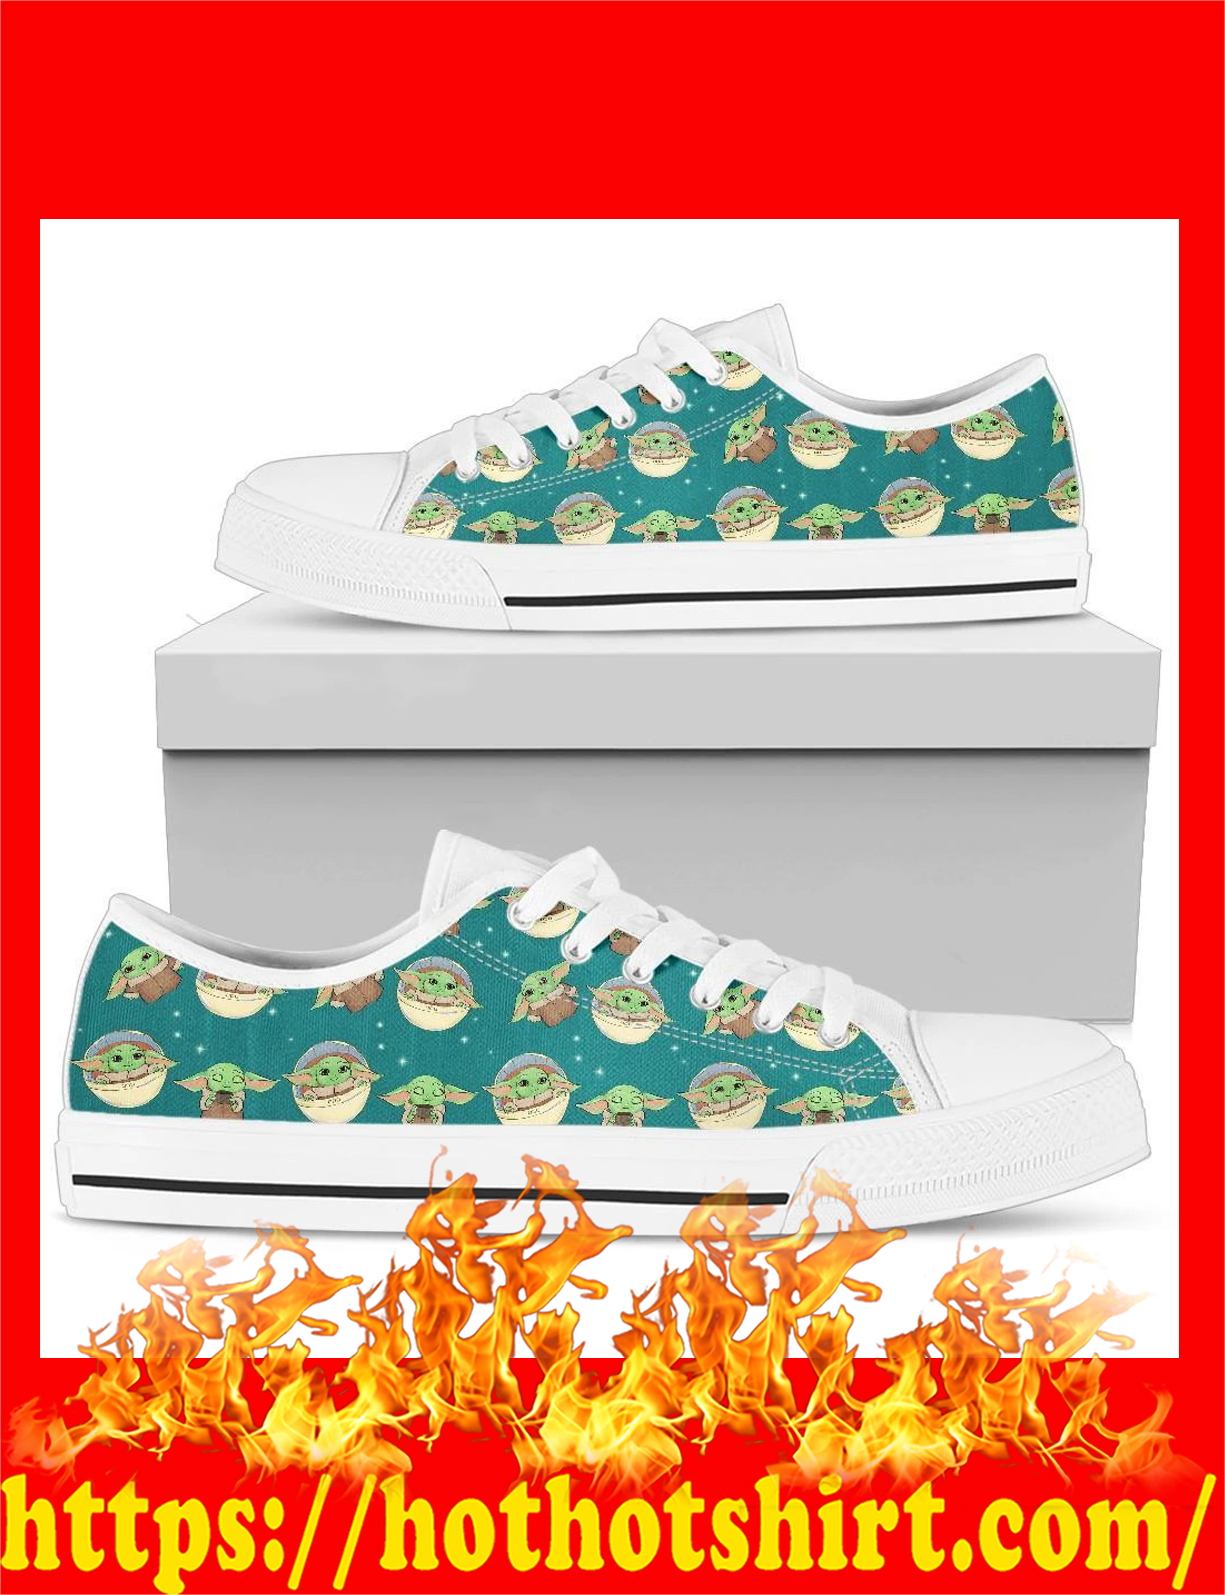 Baby master yoda low top shoes - pic 1